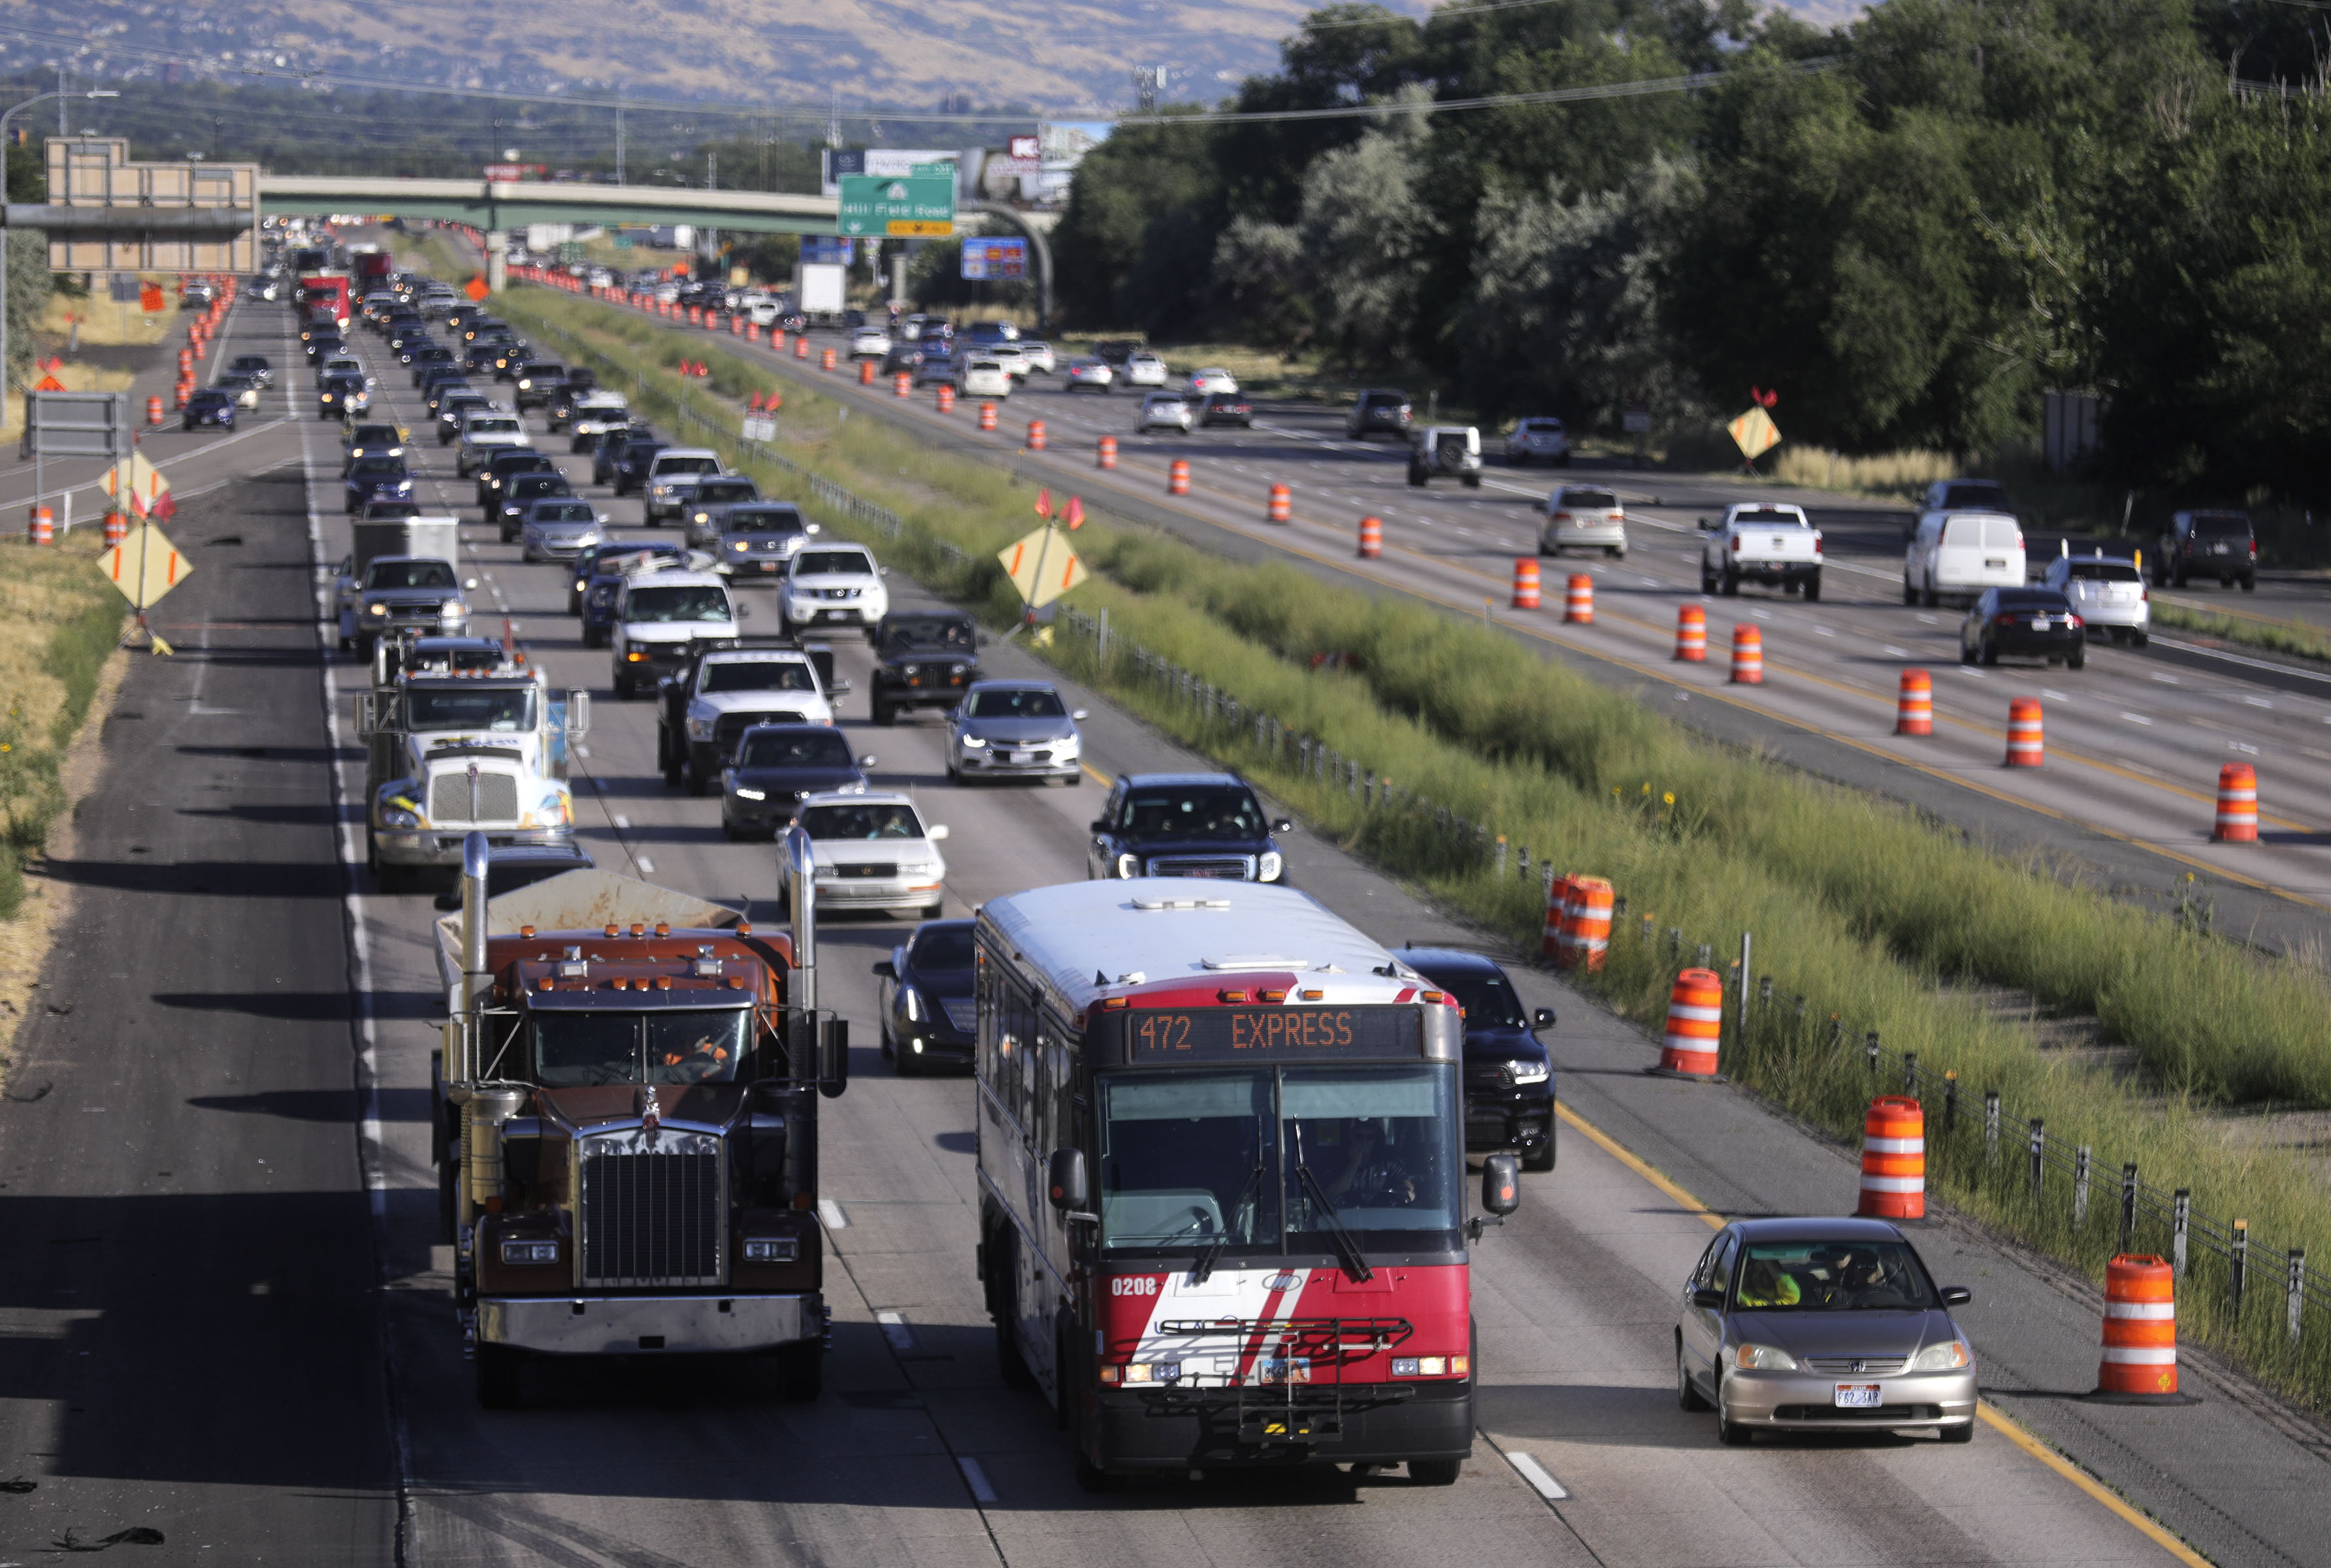 Northbound traffic moves slowly during rush hour on I-15 near Antelope Drive in Layton on Wednesday, Aug. 14, 2019.